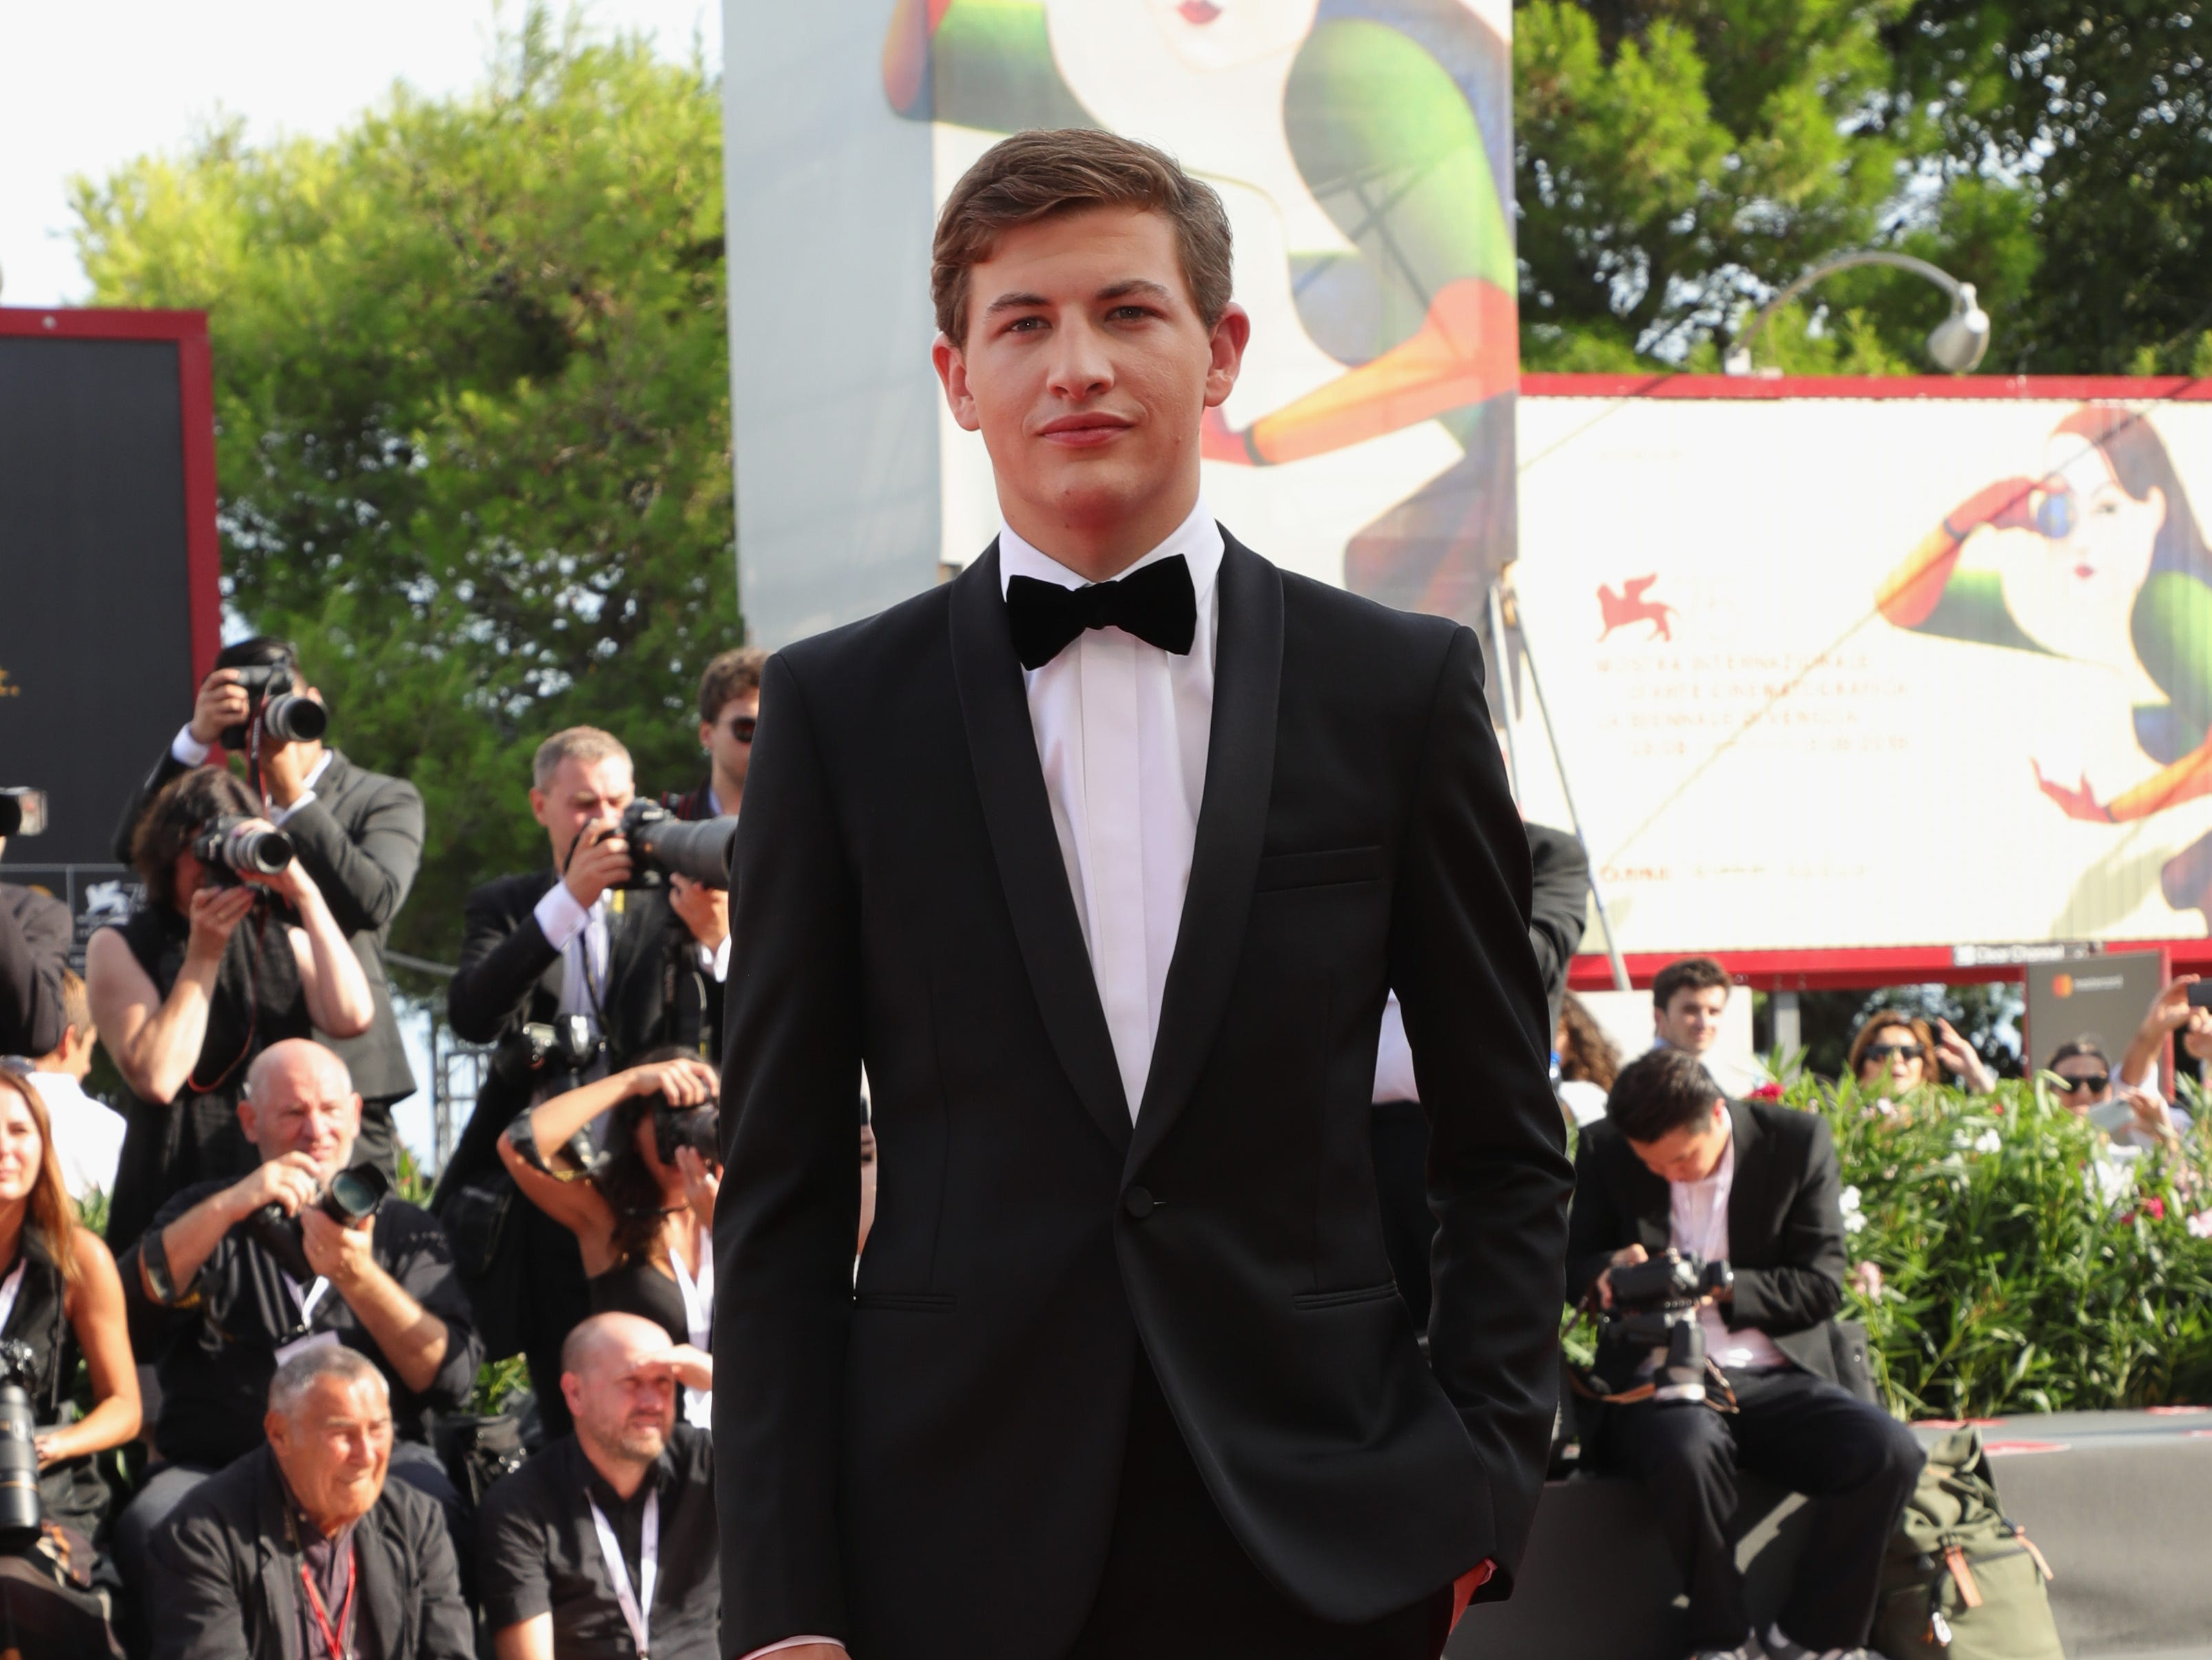 VENICE, ITALY - AUGUST 30:  Tye Sheridan walks the red carpet ahead of the 'The Mountain' screening during the 75th Venice Film Festival at Sala Grande on August 30, 2018 in Venice, Italy.  (Photo by Vittorio Zunino Celotto/Getty Images) ORG XMIT: 775200672 ORIG FILE ID: 1025261630